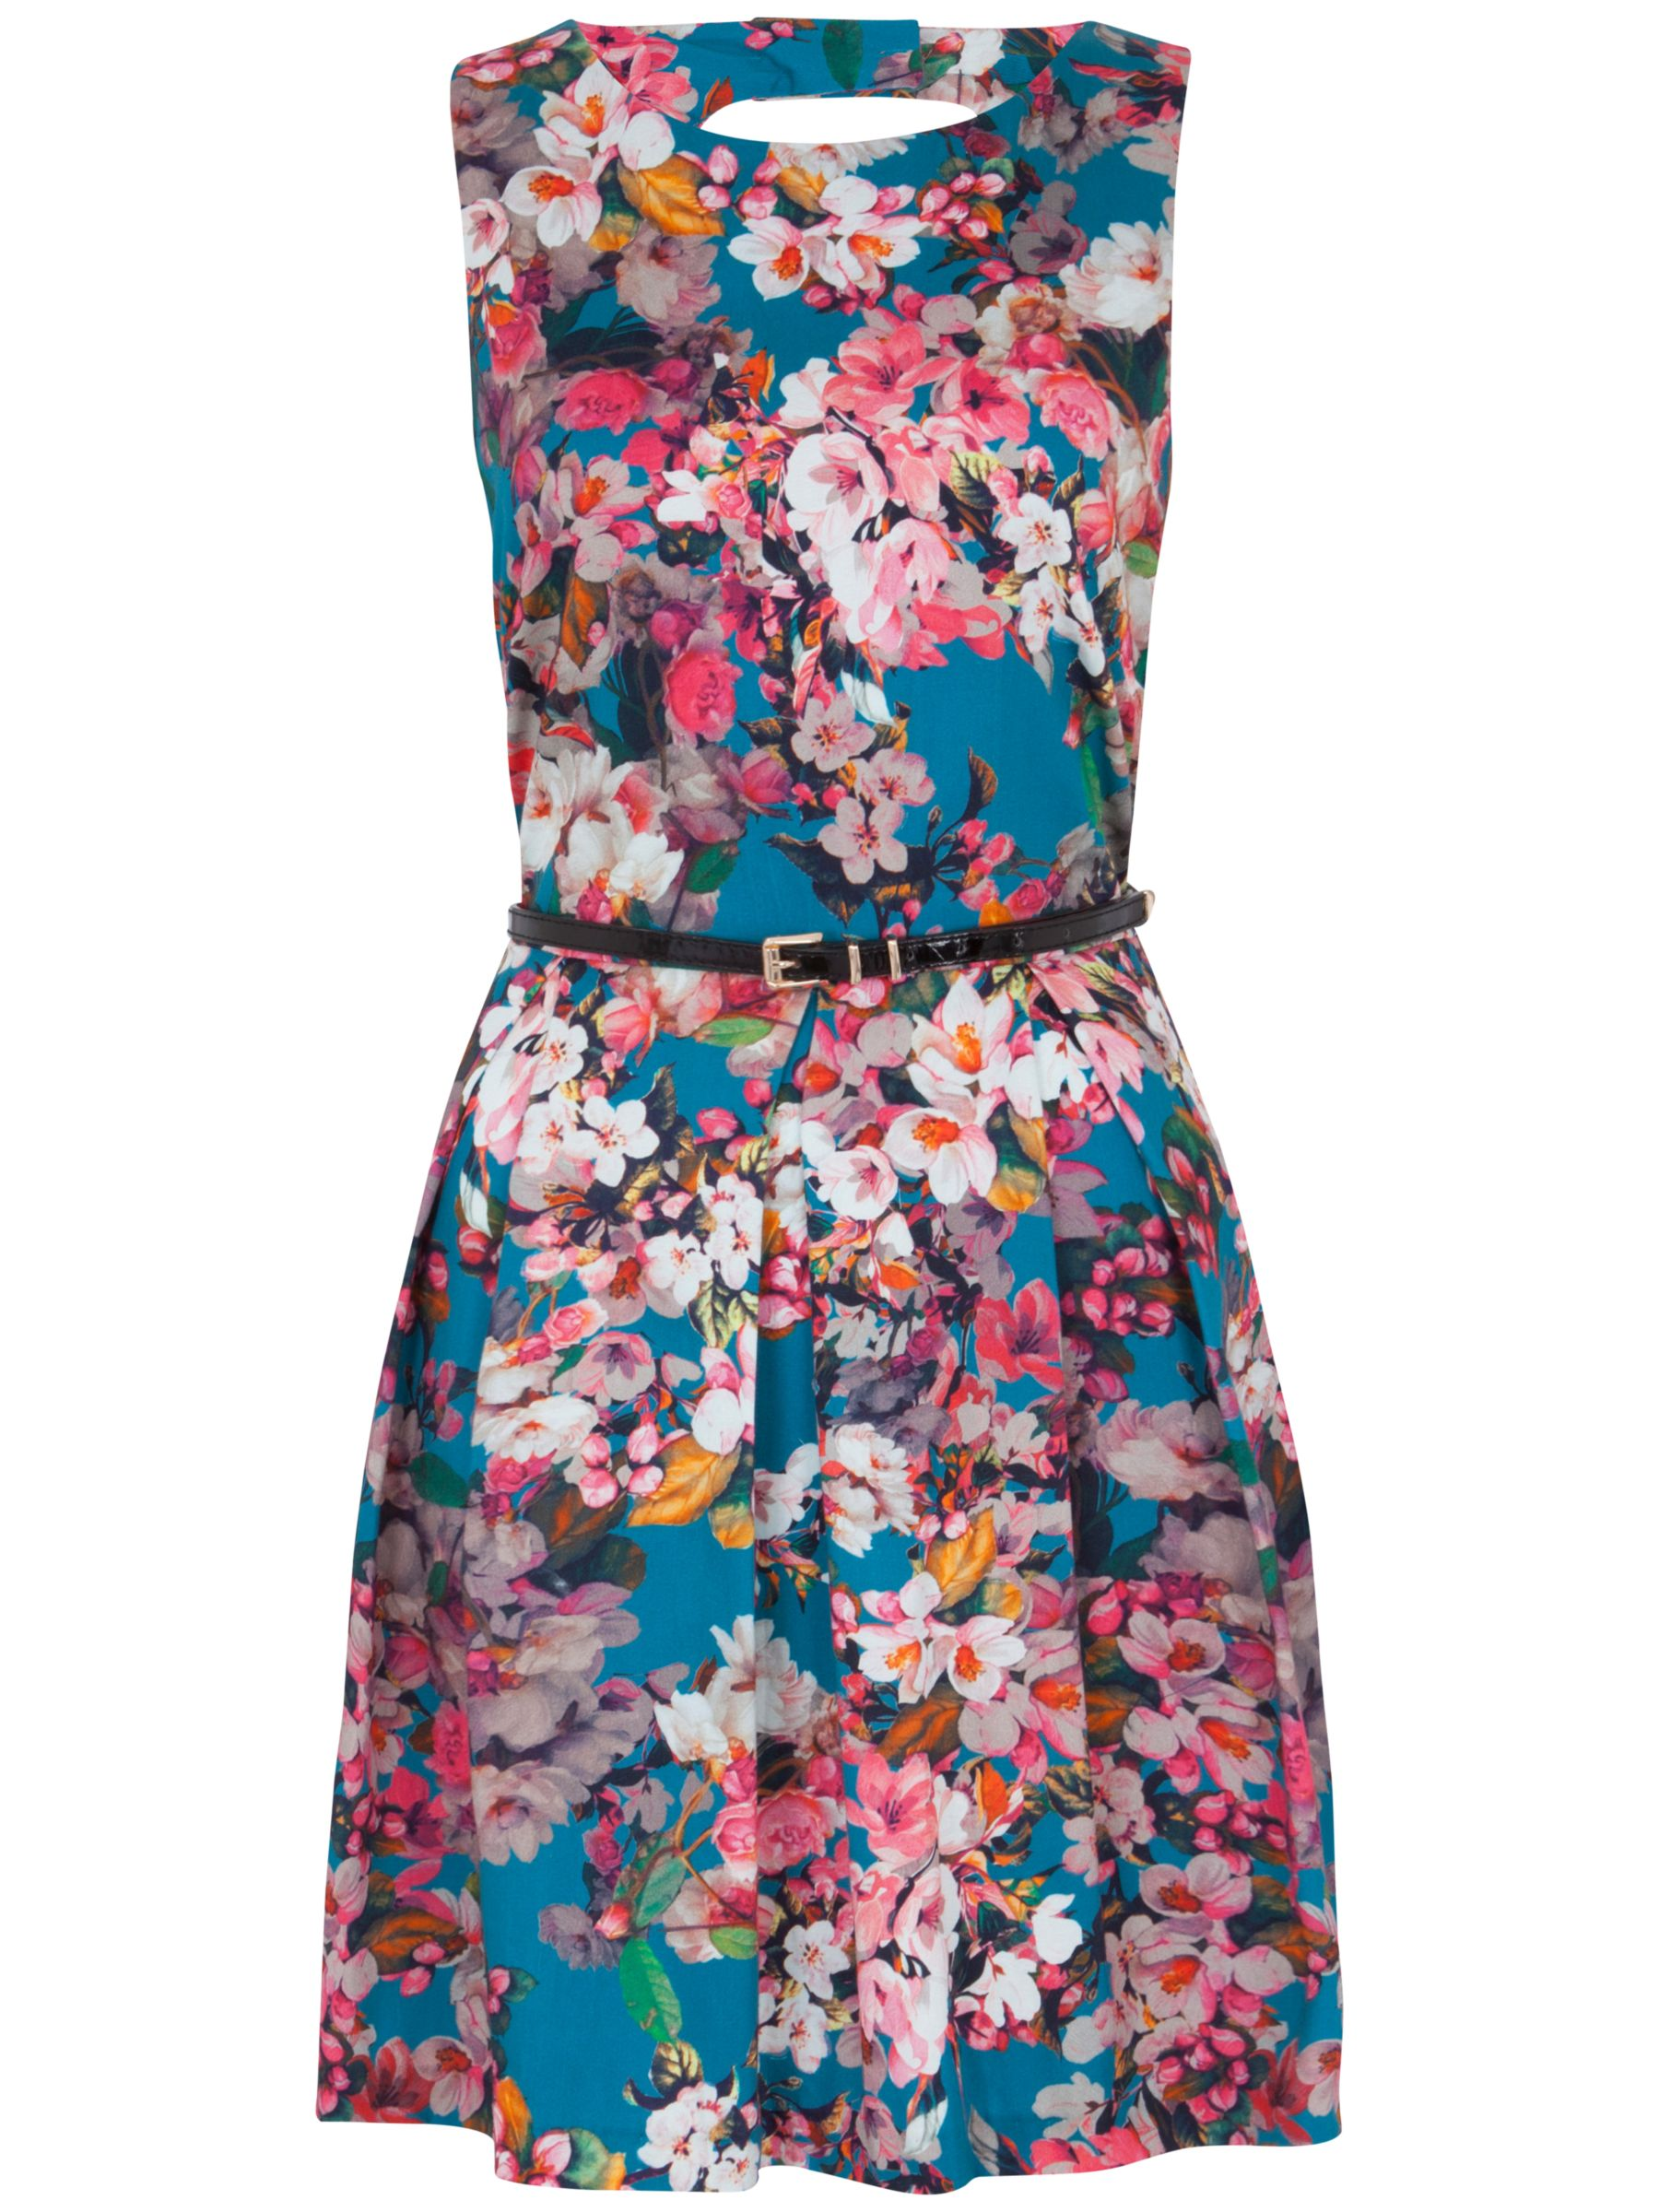 almari floral cut-out back dress multi, almari, floral, cut-out, back, dress, multi, 8|10|12|14, clearance, womenswear offers, womens dresses offers, winter sun, women, inactive womenswear, new reductions, womens dresses, buy now save for spring, special offers, 1797394